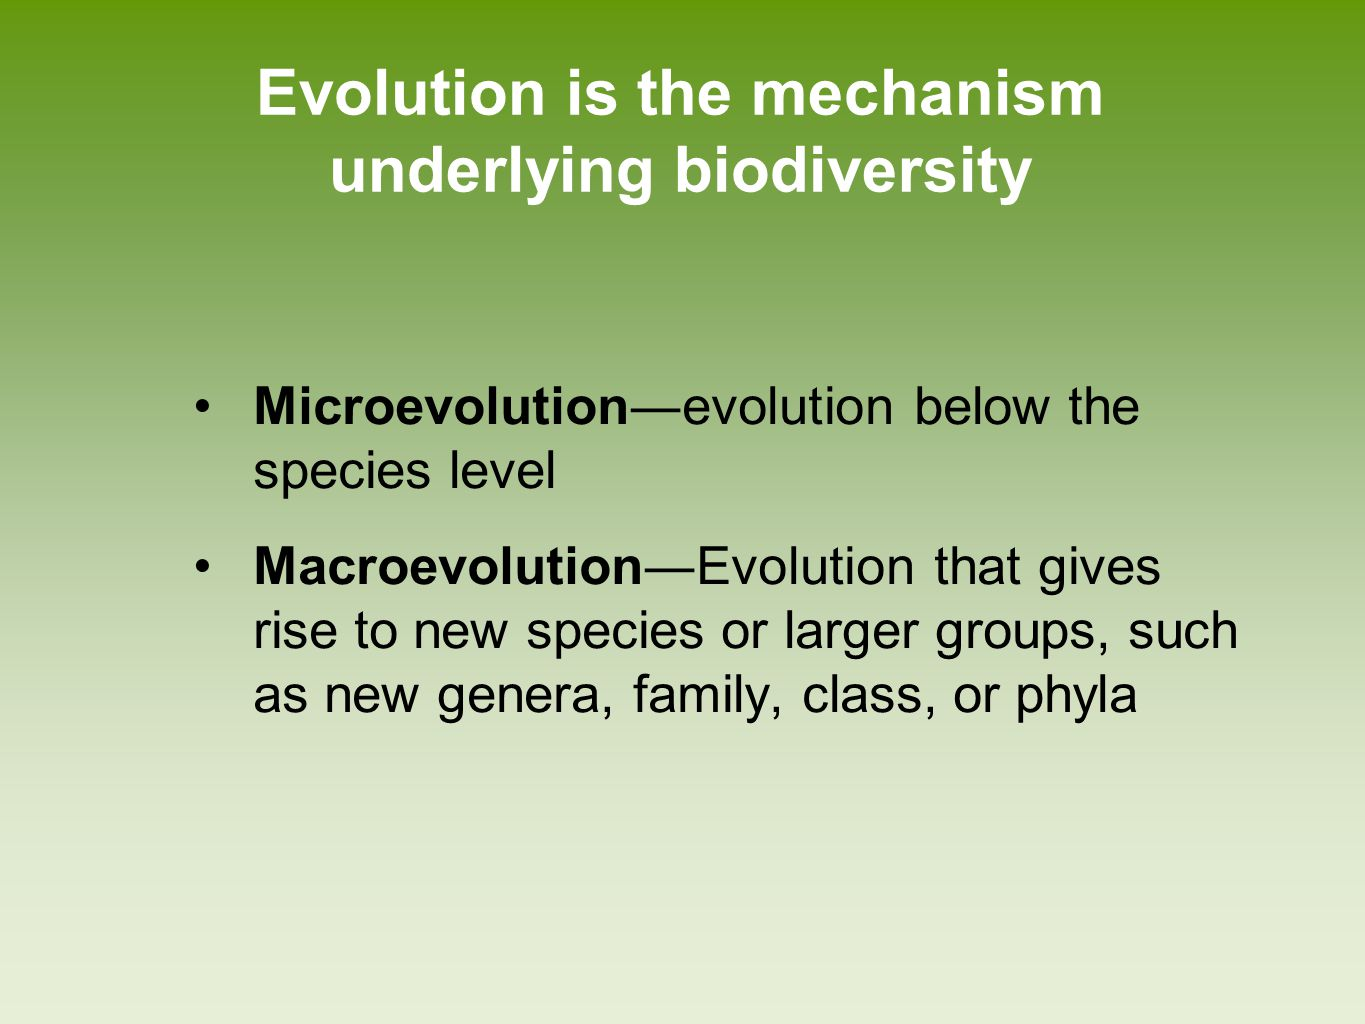 Evolution is the mechanism underlying biodiversity